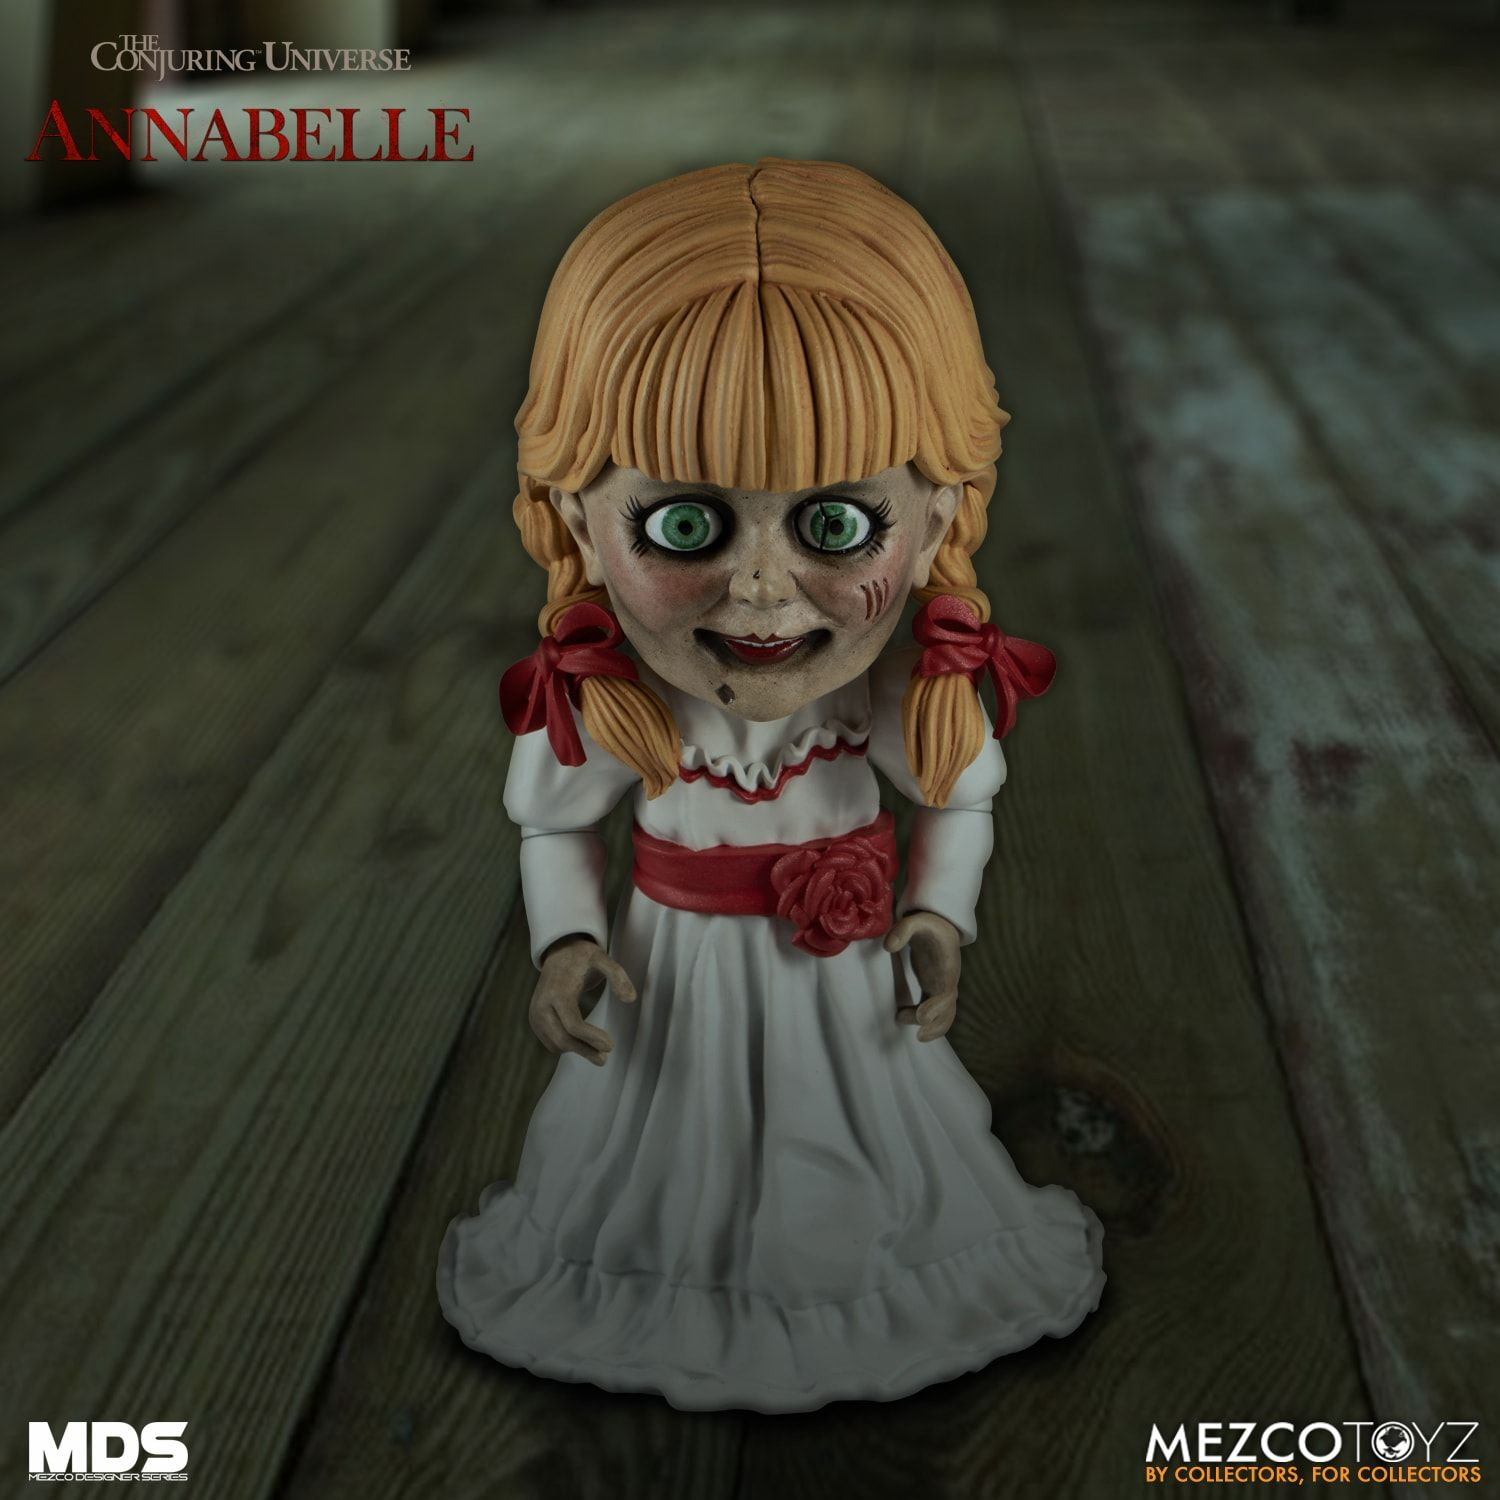 Annabelle Mezco Designer Series Figure Is Haunting